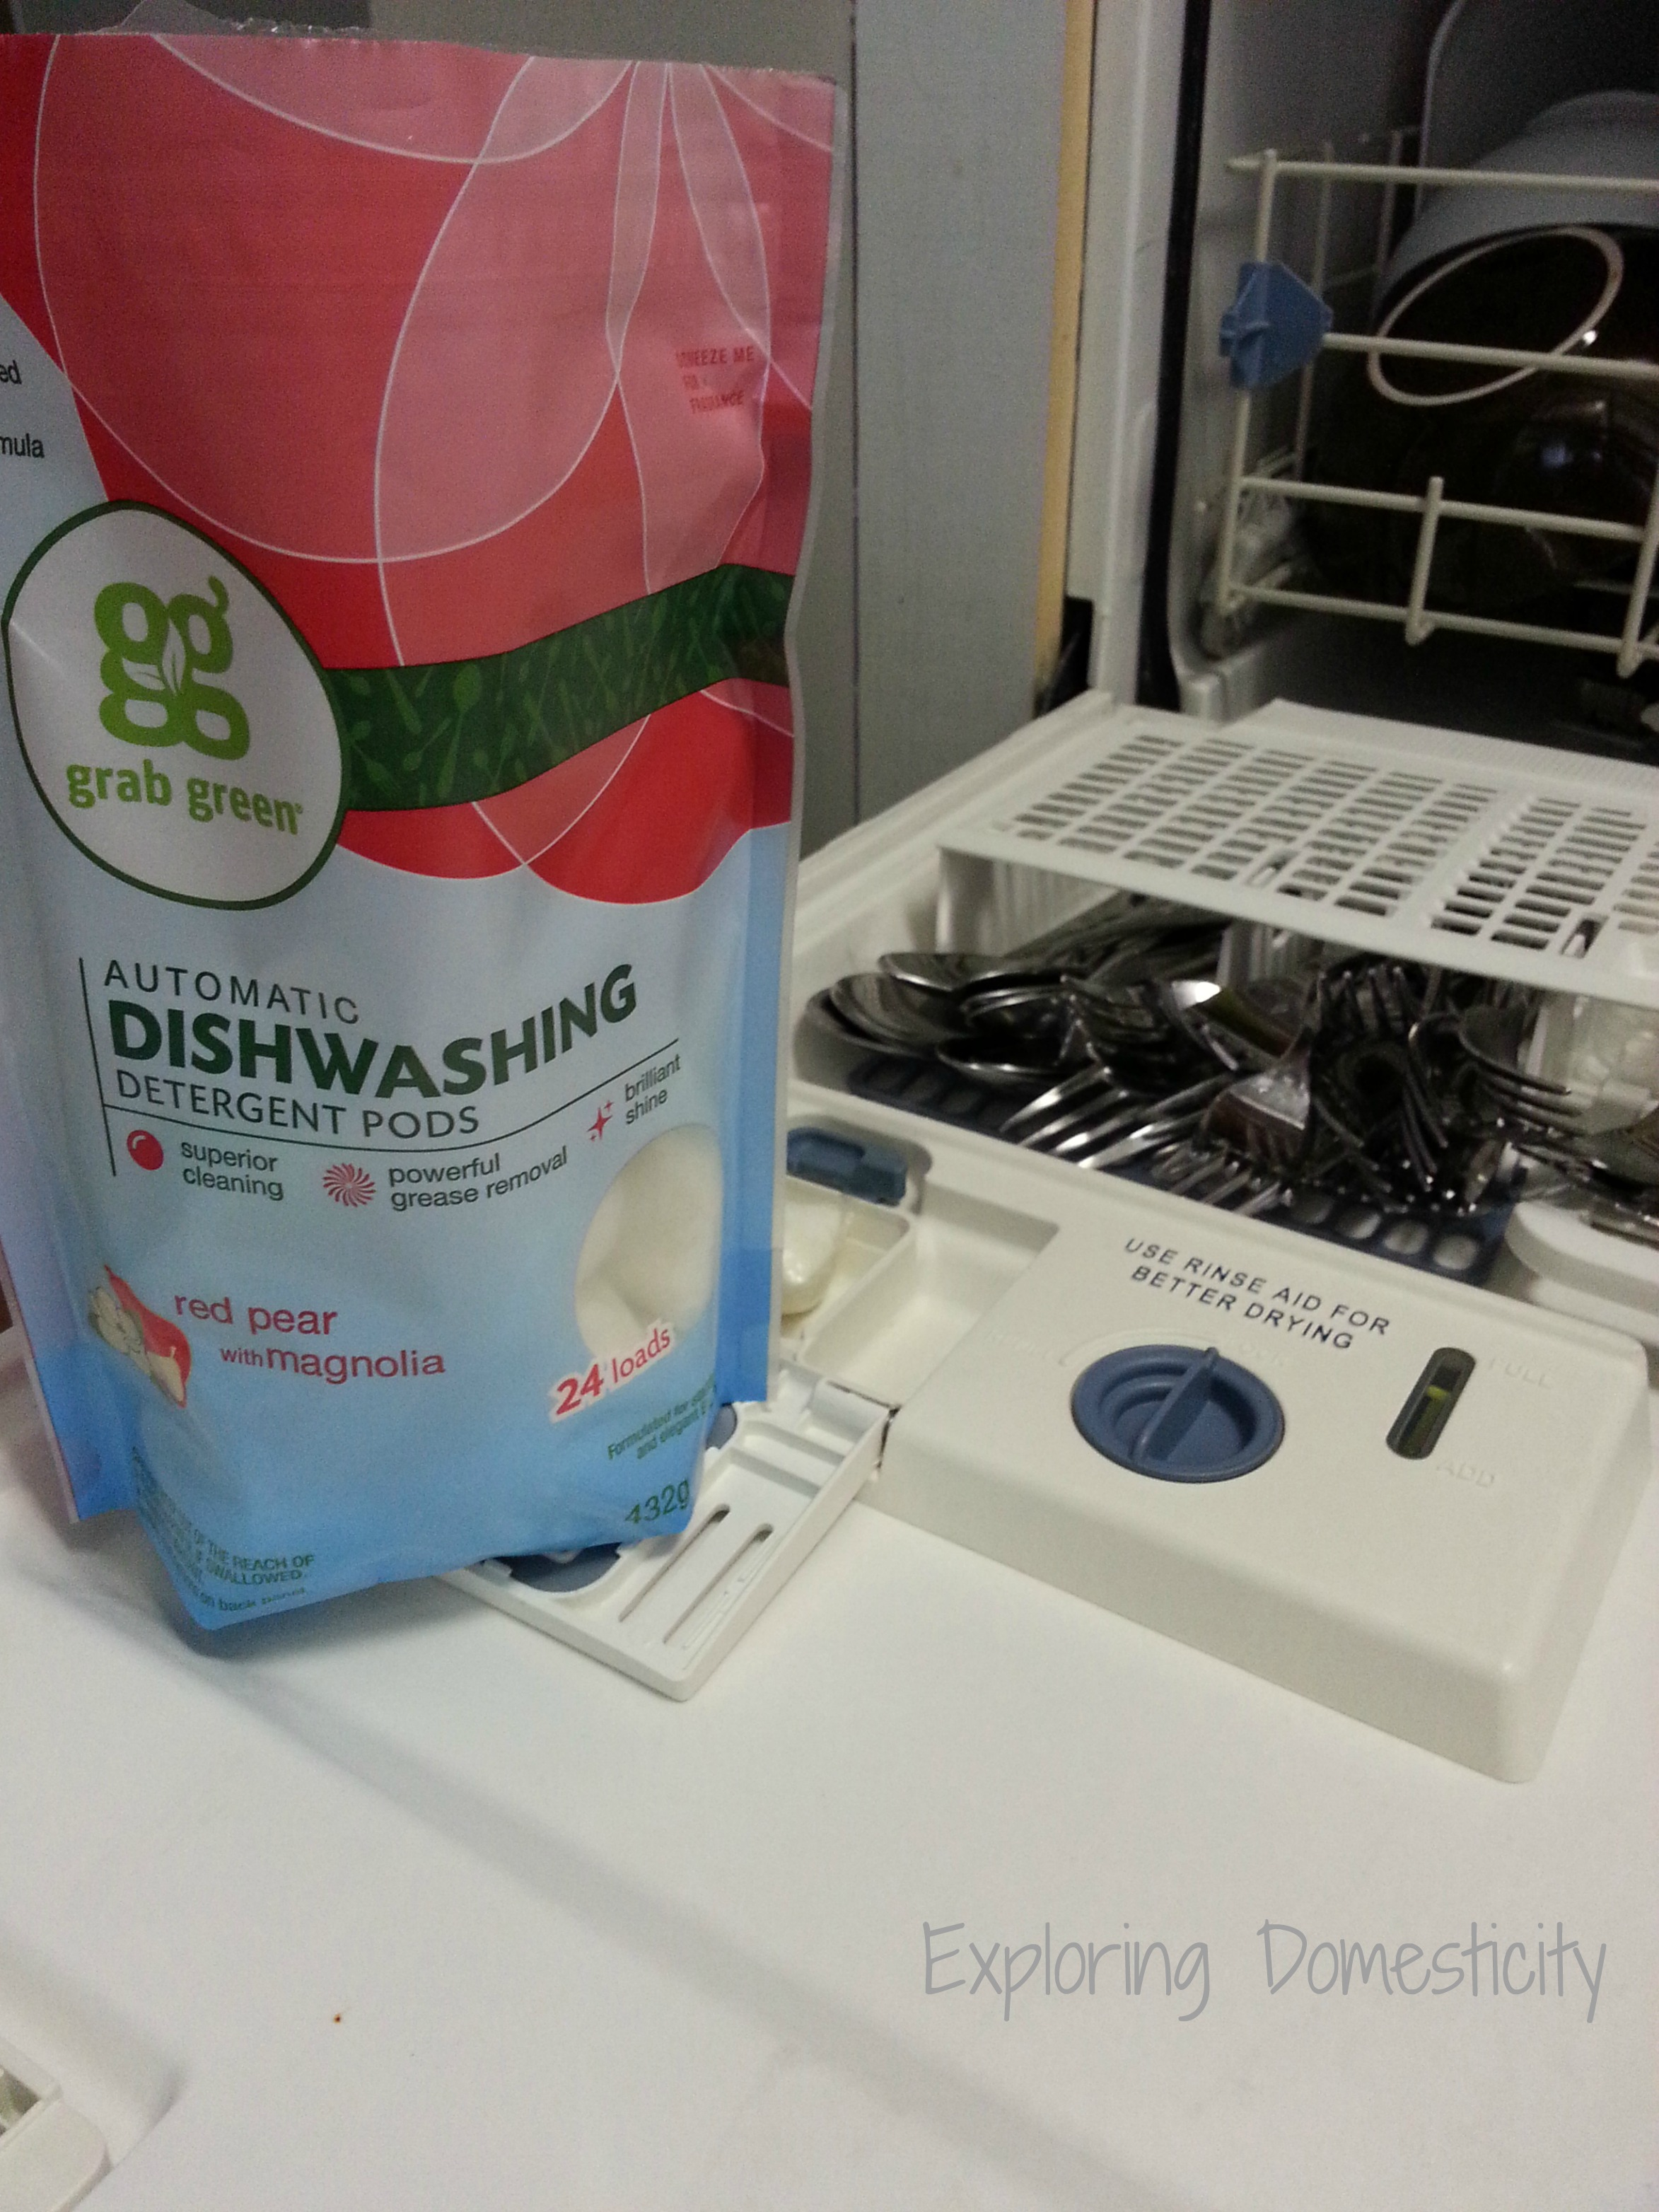 Non Toxic Laundry And Dish Pods From Grabgreen And